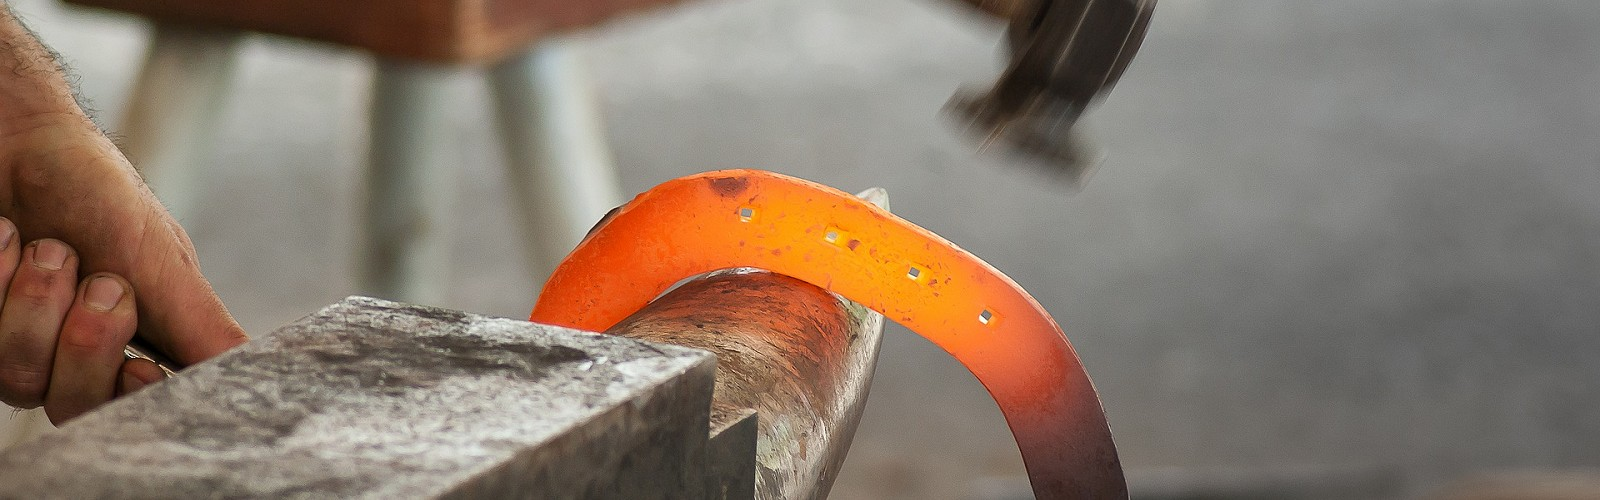 glowing red hot horseshoe over an anvil with hammer poised to strike (image: Jacqueline Macou / Pixabay)